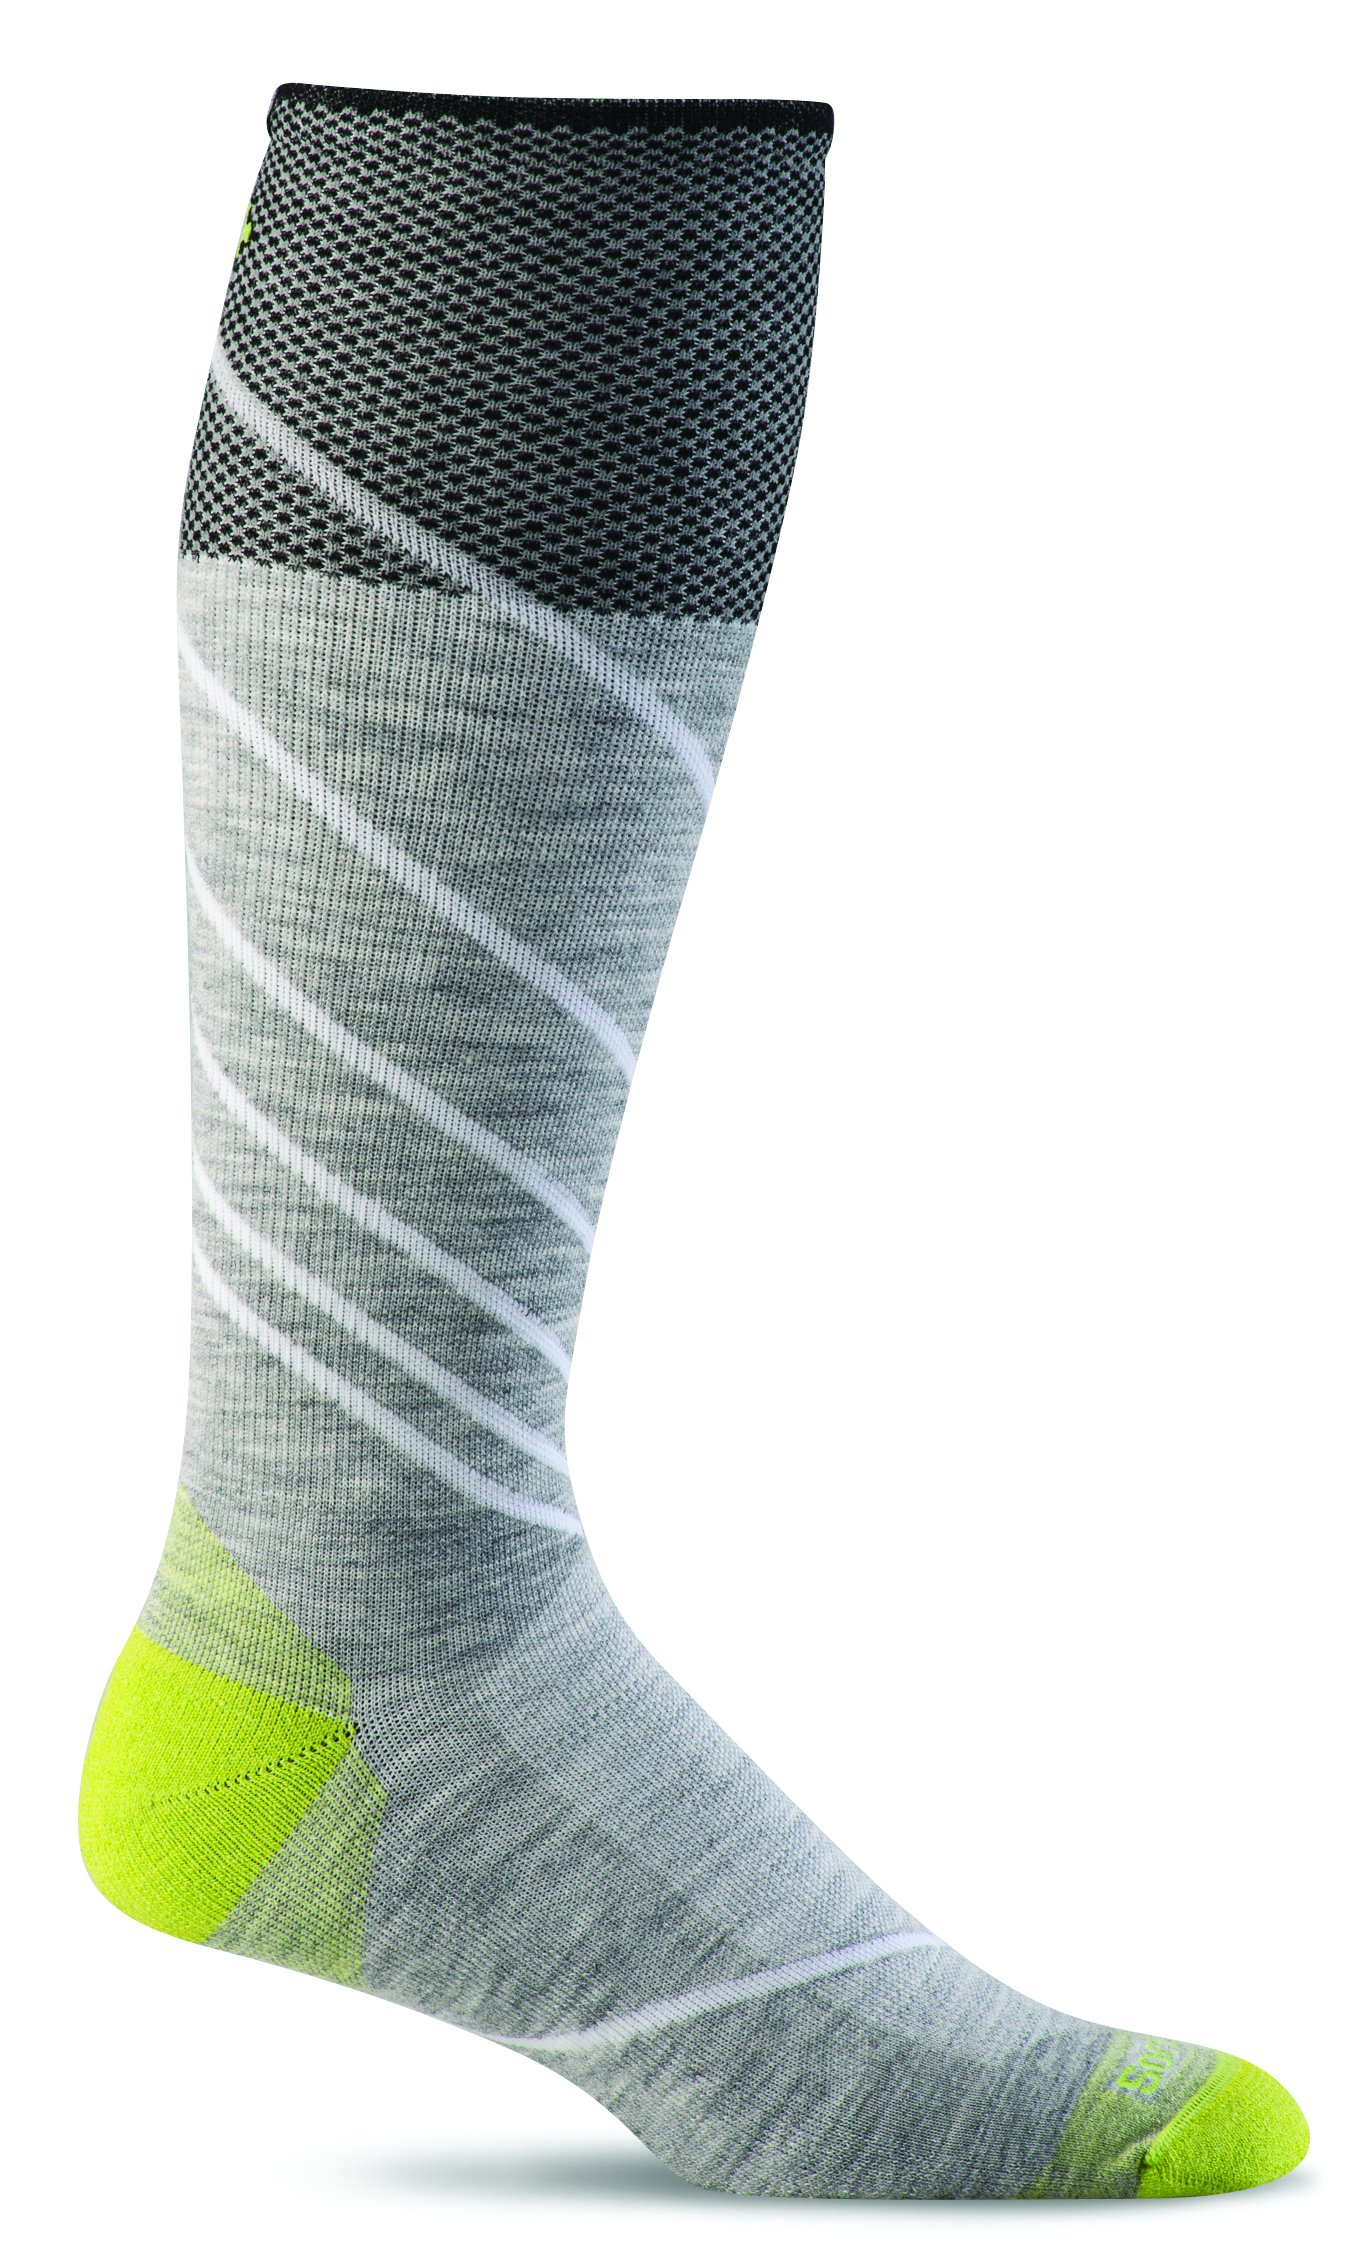 Sockwell Men's Pulse Firm Graduated Compression Socks, Grey, Large/X-Large by Sockwell